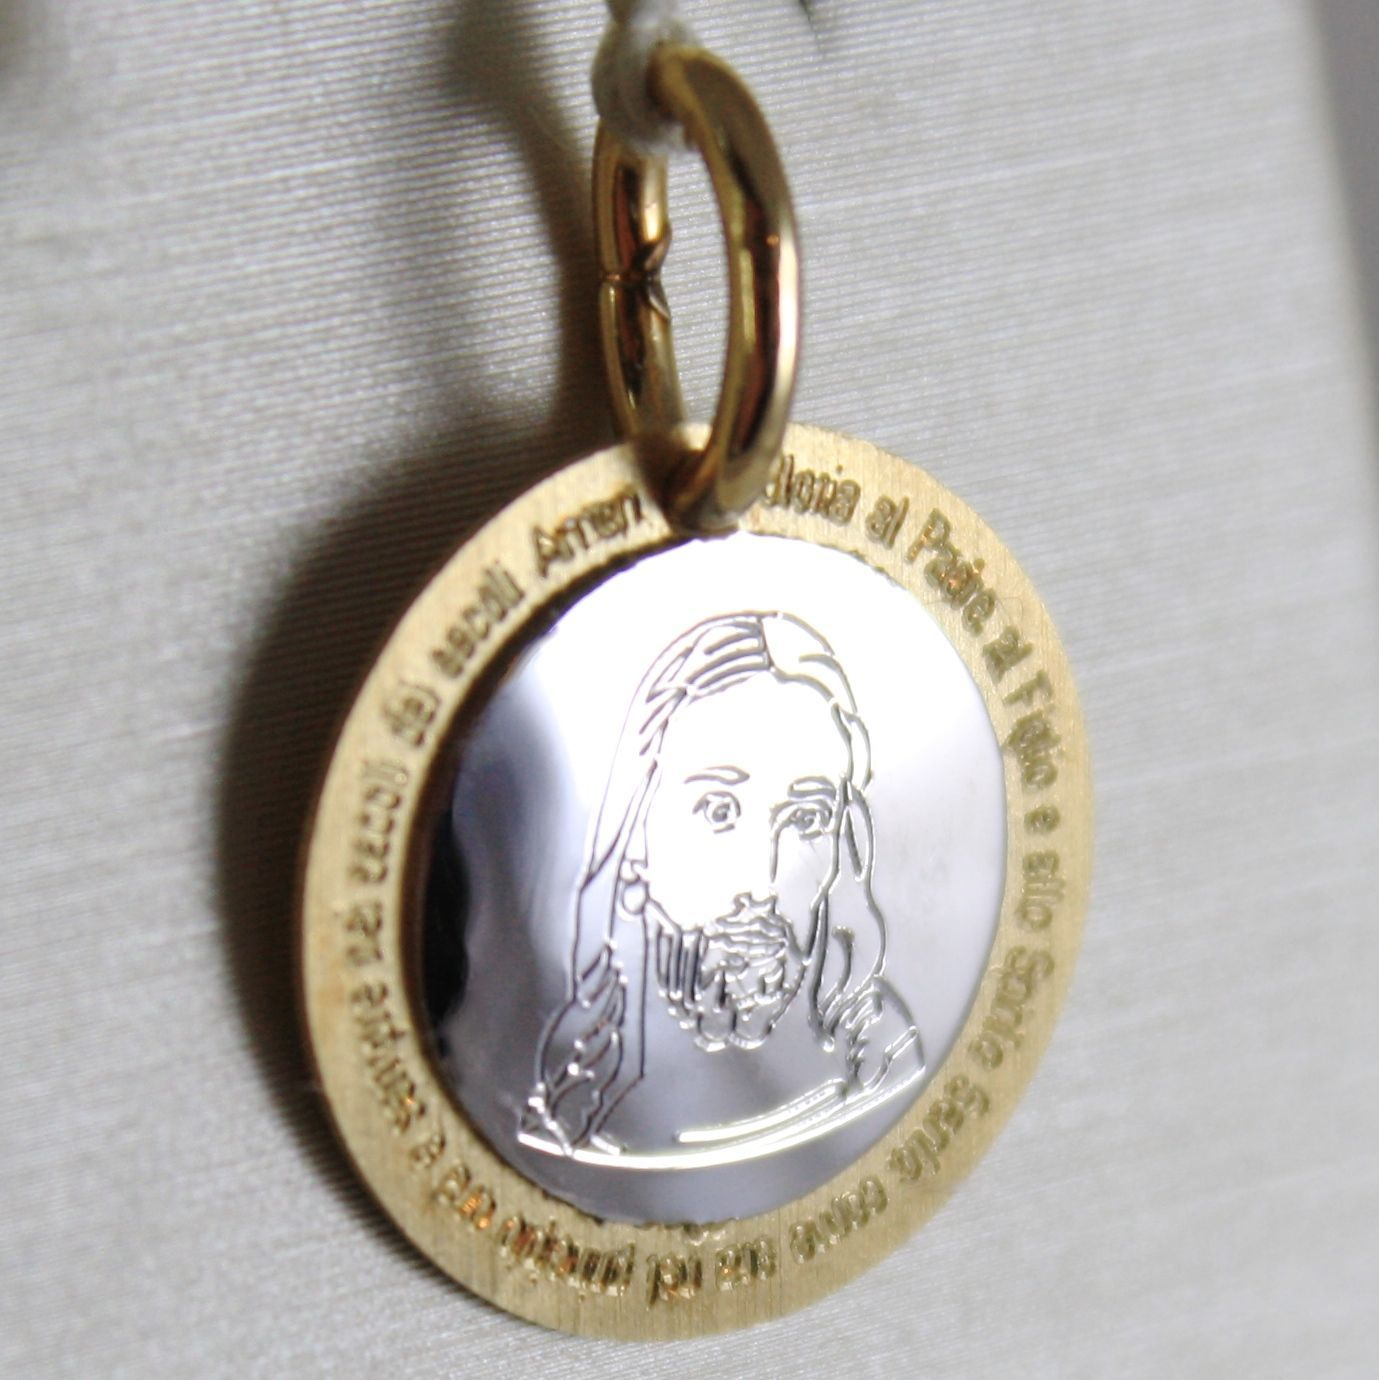 PENDANT MEDAL YELLOW GOLD WHITE 750 18K, FACE OF CHRIST AND PRAYER GLORIA